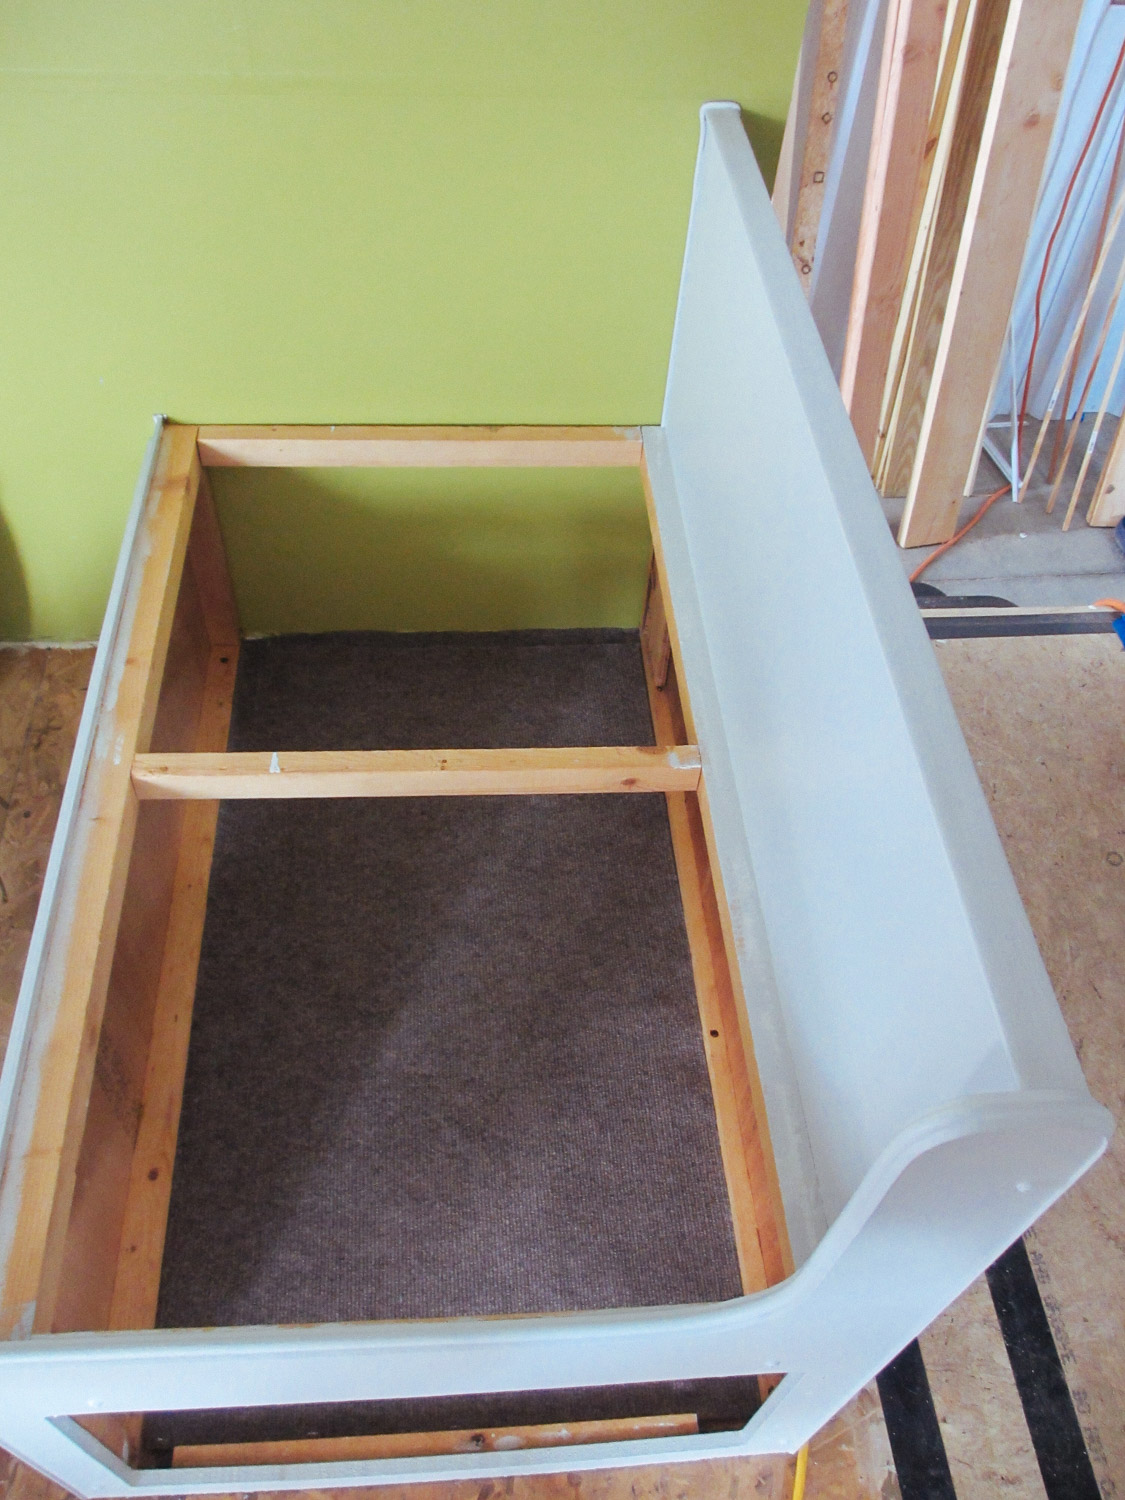 We added pieces of carpet in the dinette seat storage area.